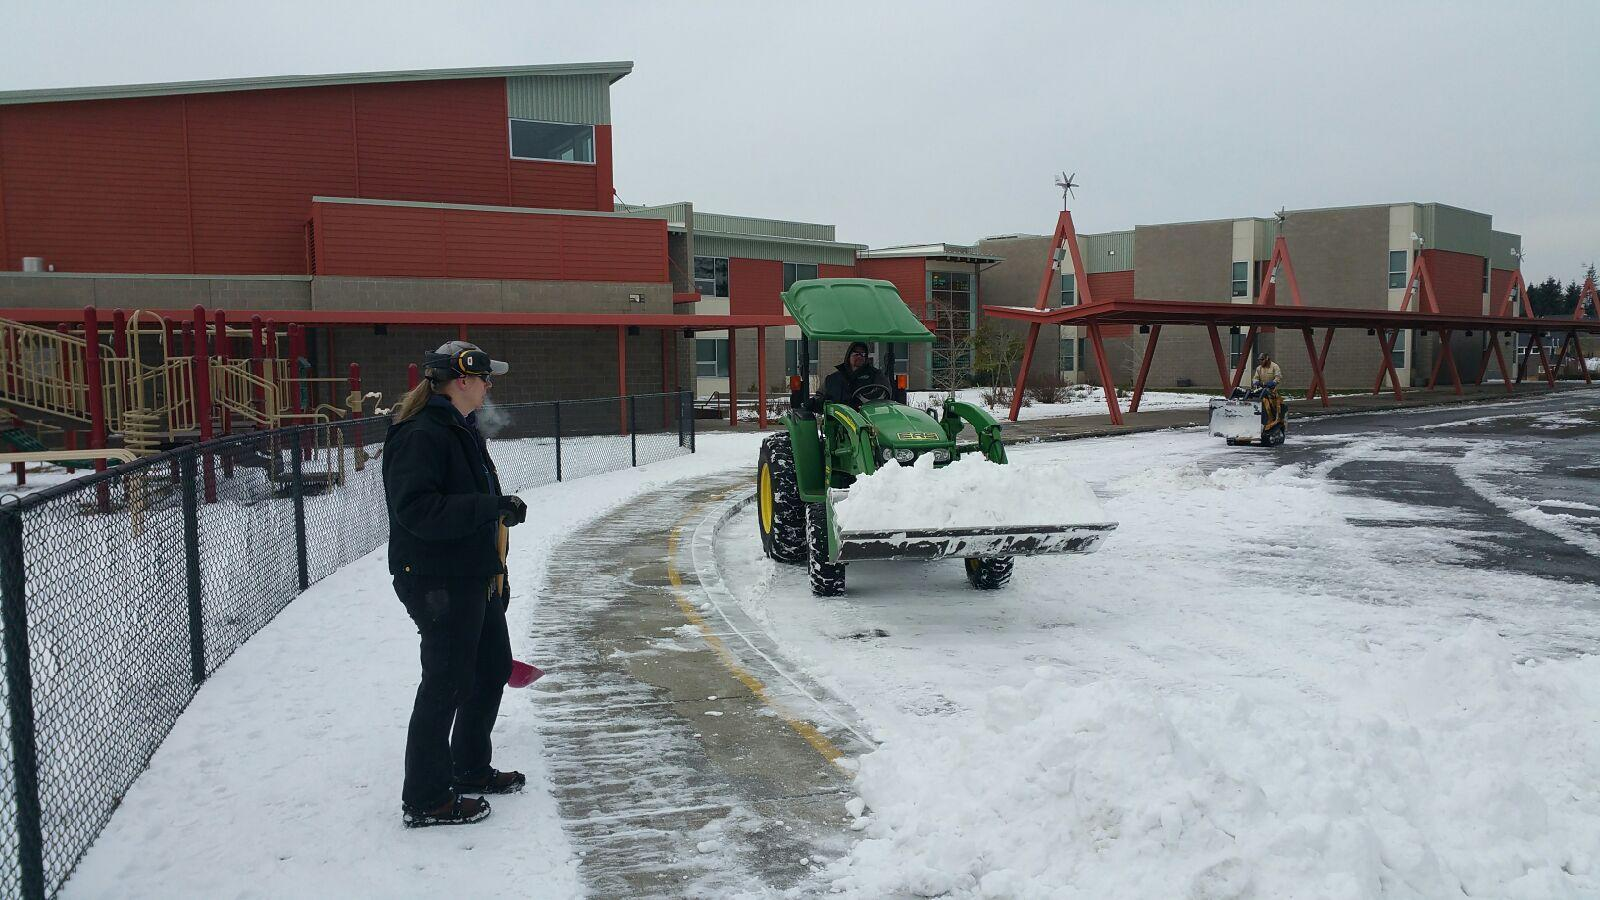 snow at Grass Valley Elementary